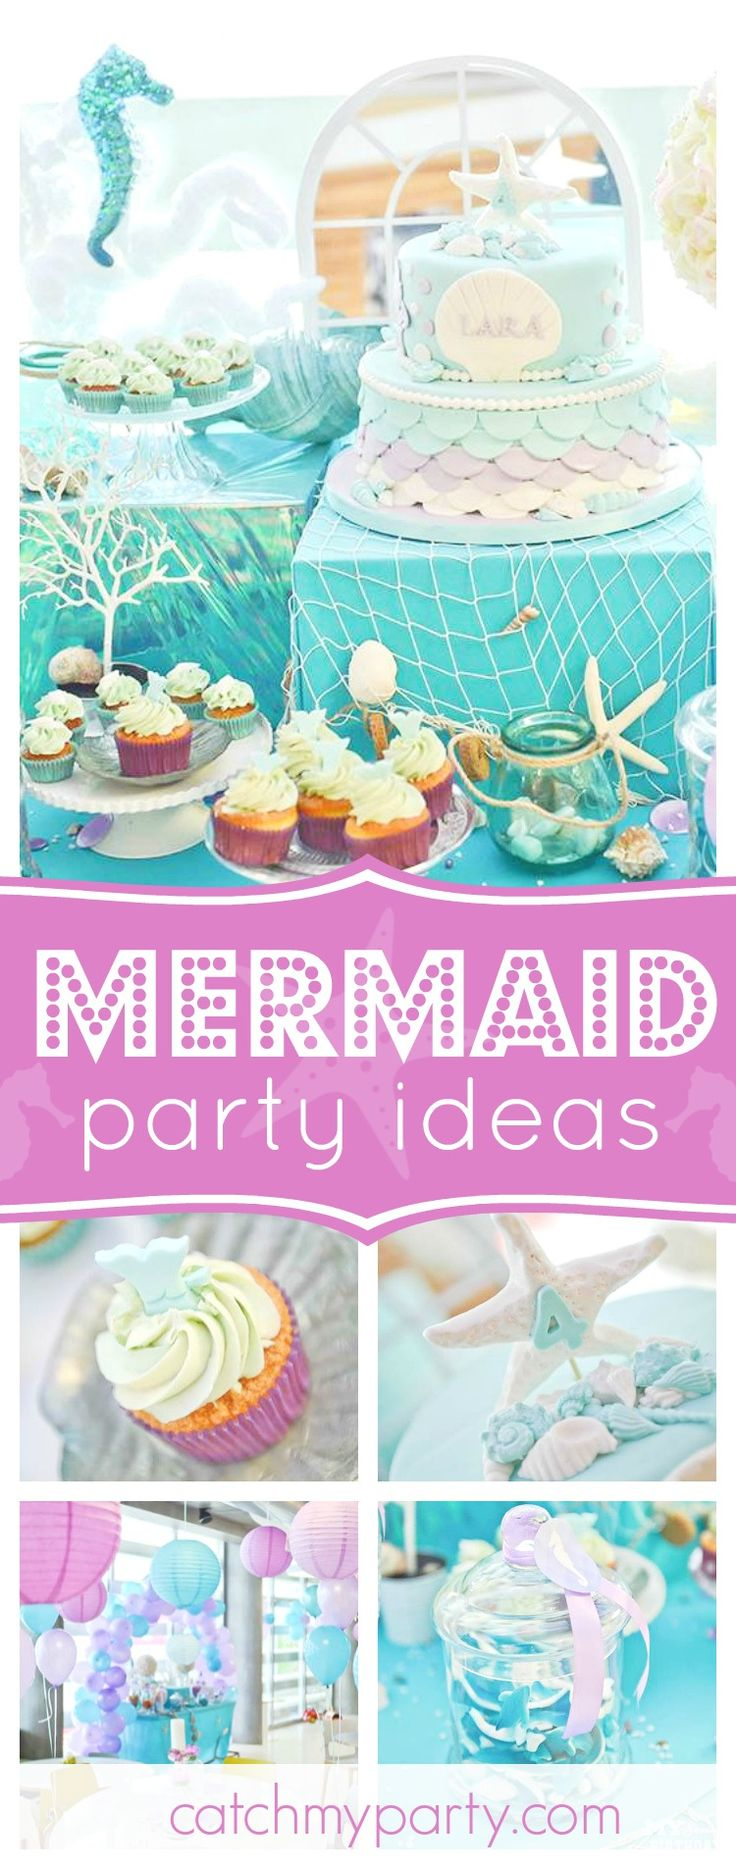 Don't miss this beautiful Mermaid birthday party. The decor and cake are wonderful!! See more party ideas and share yours at CatchMyParty.com